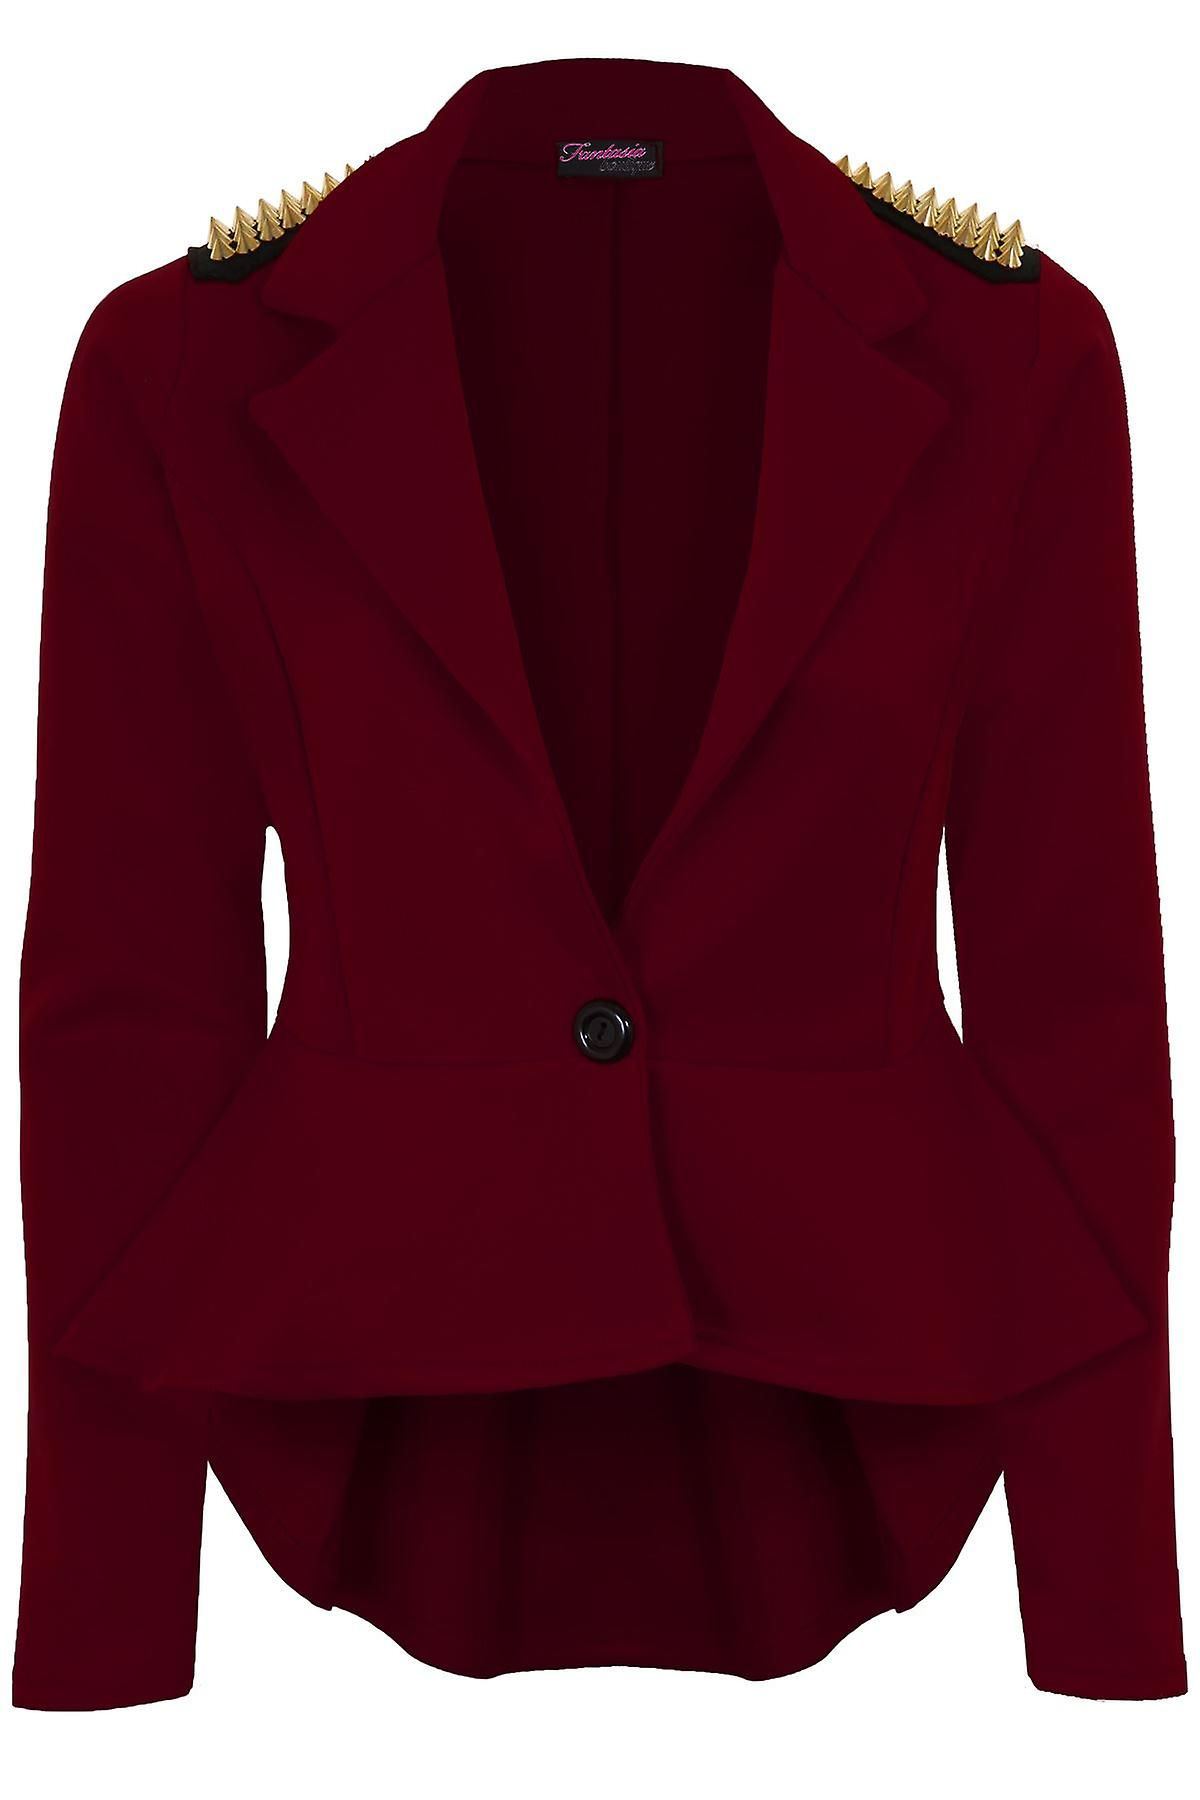 Ladies Spike Shoulder High Low Frill Shift Pleated Women's Peplum Jacket Blazer